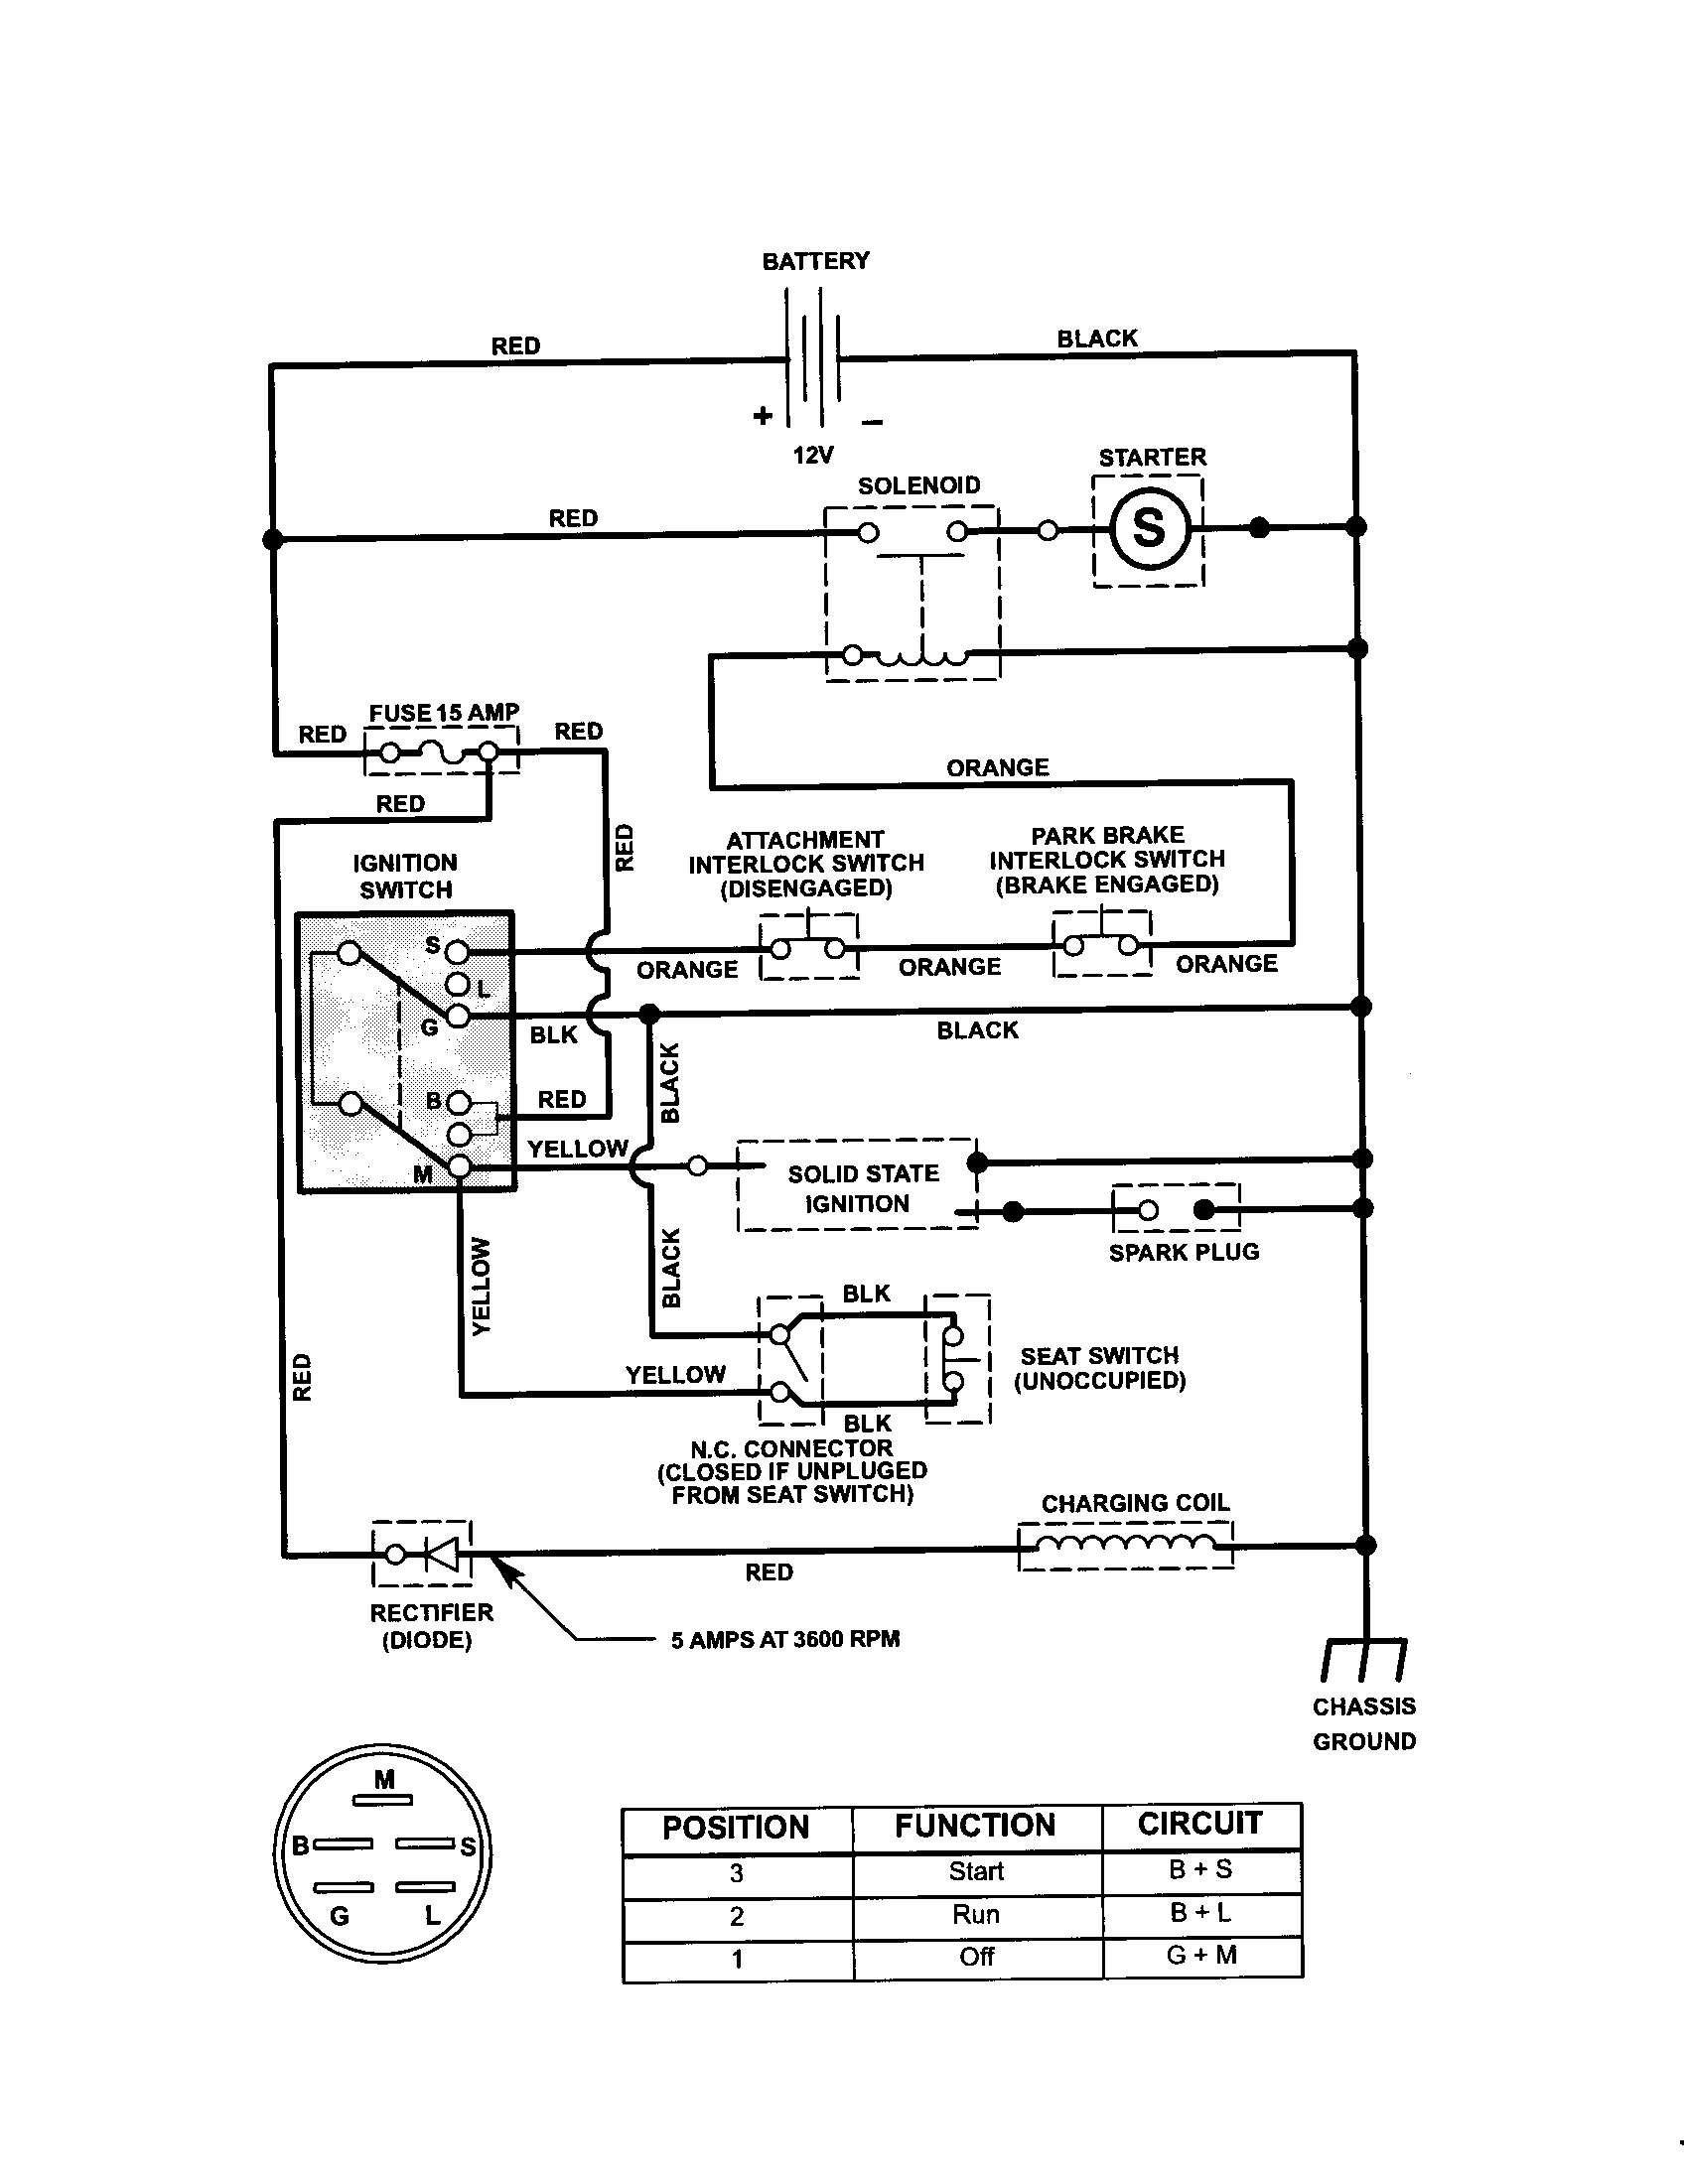 wiring diagram for craftsman riding lawn mower Collection-Craftsman Riding Mower Electrical Diagram 3-g